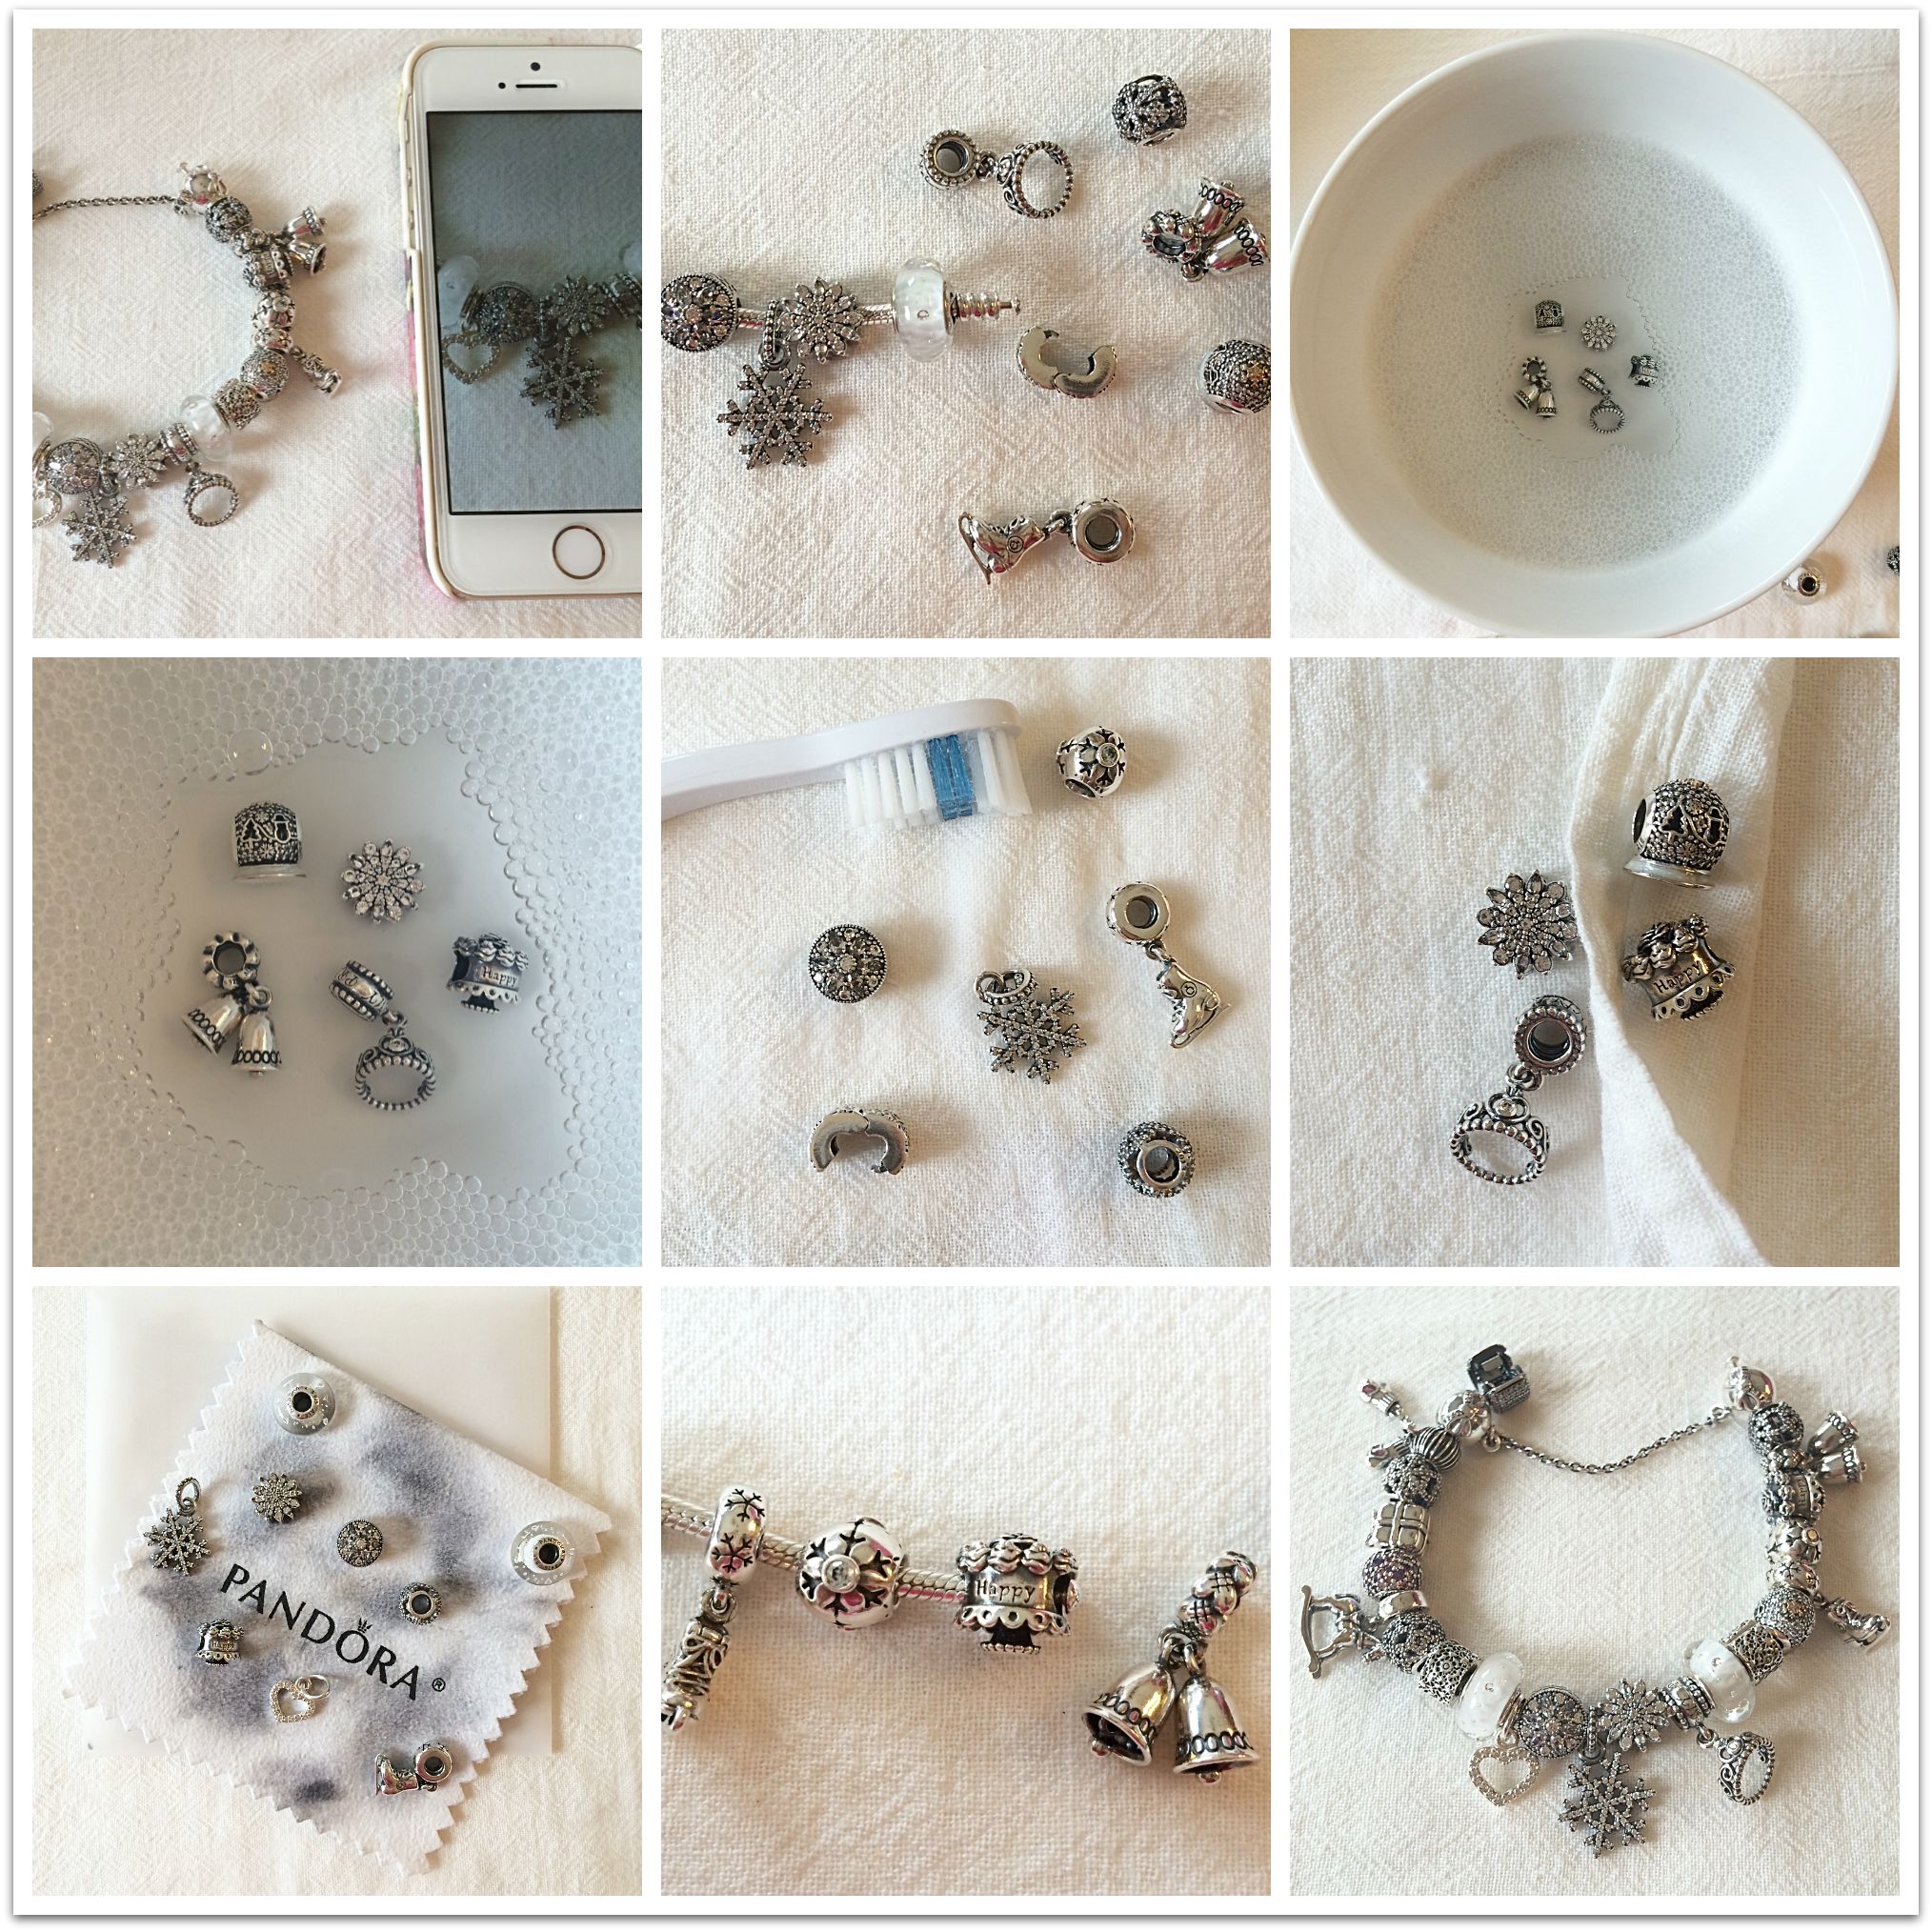 Cleaning Your Pandora Bracelet